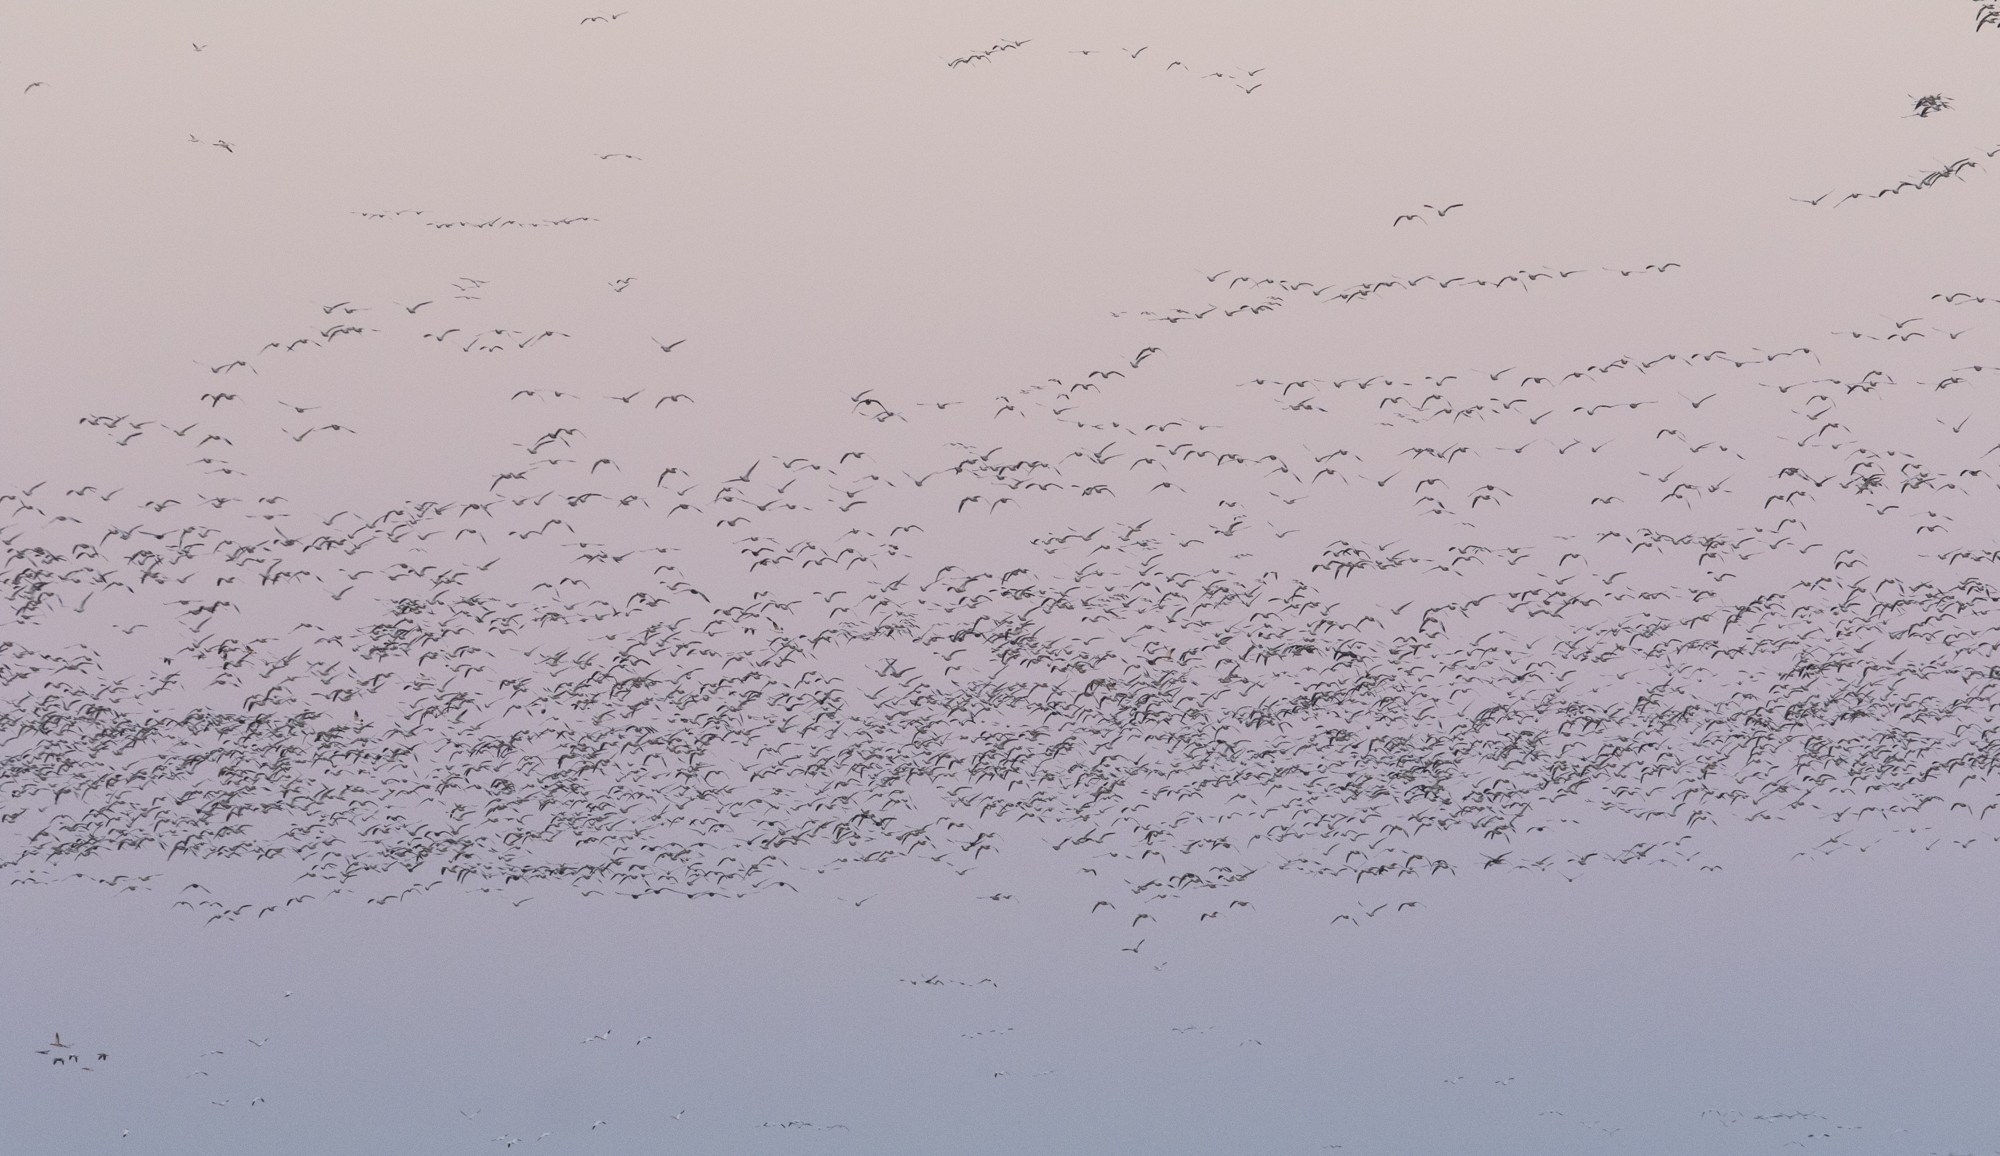 More snow geese arriving